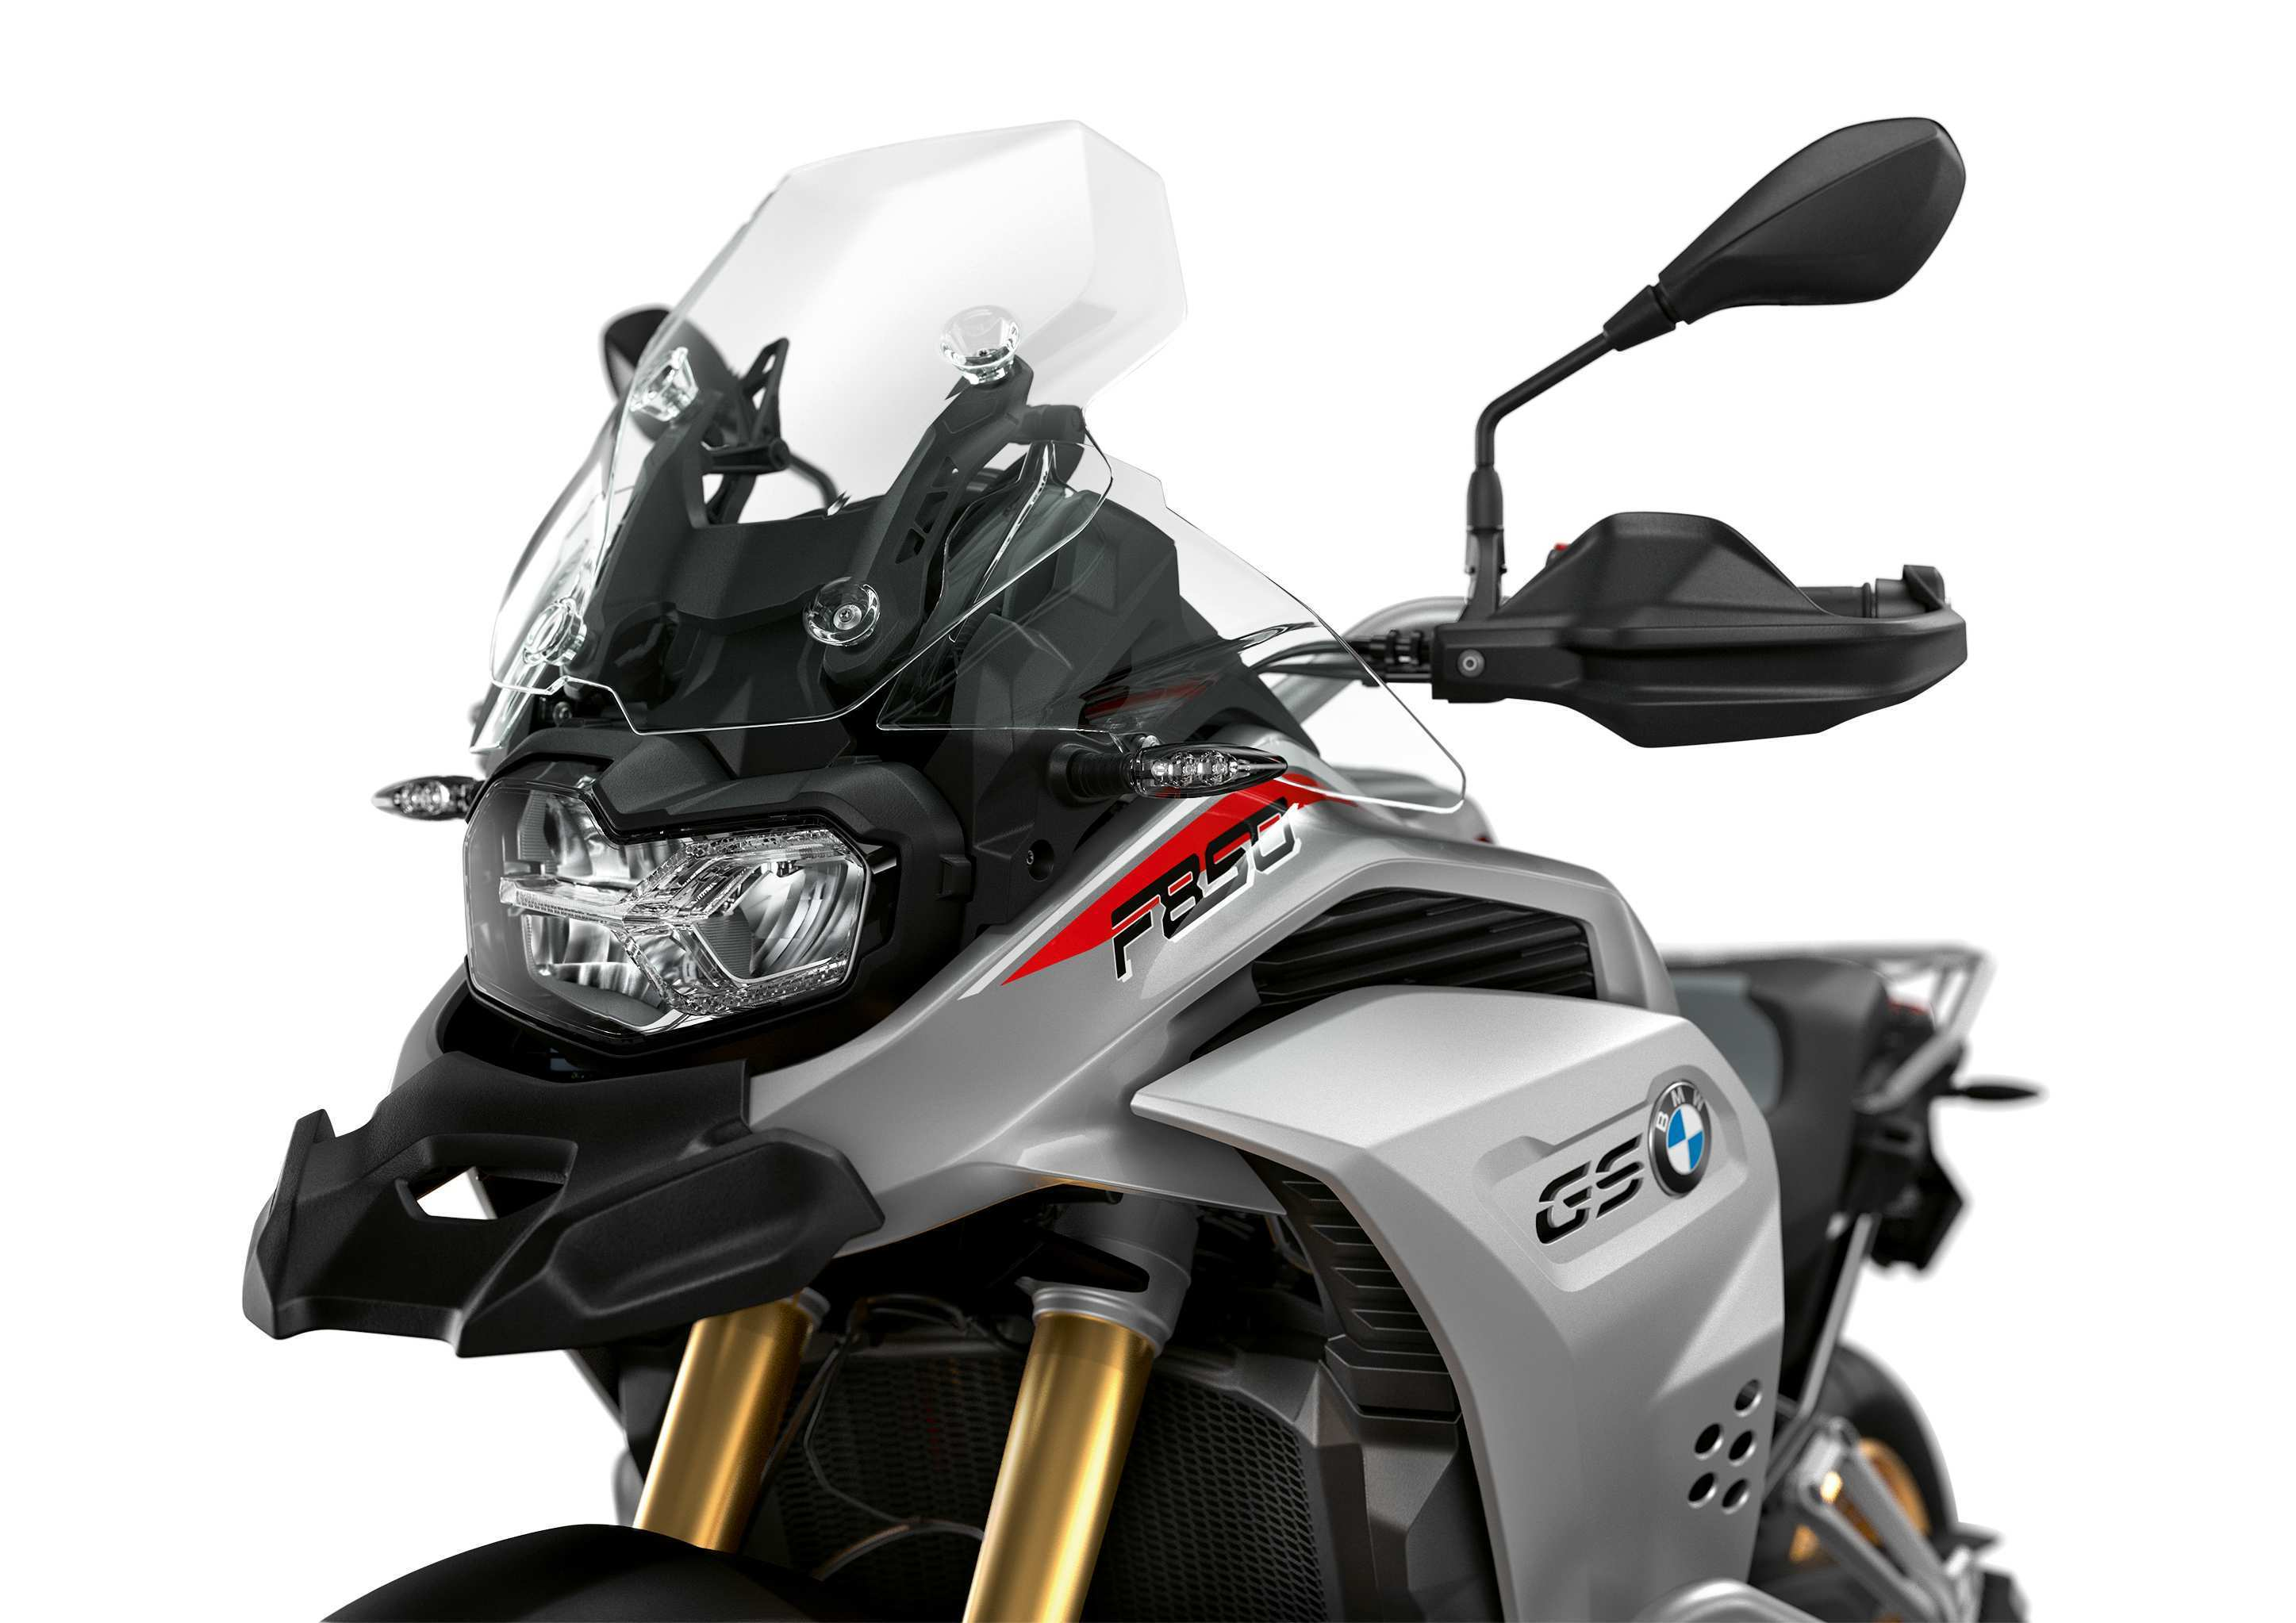 54 All New Bmw F850Gs Adventure 2019 Engine Spy Shoot for Bmw F850Gs Adventure 2019 Engine